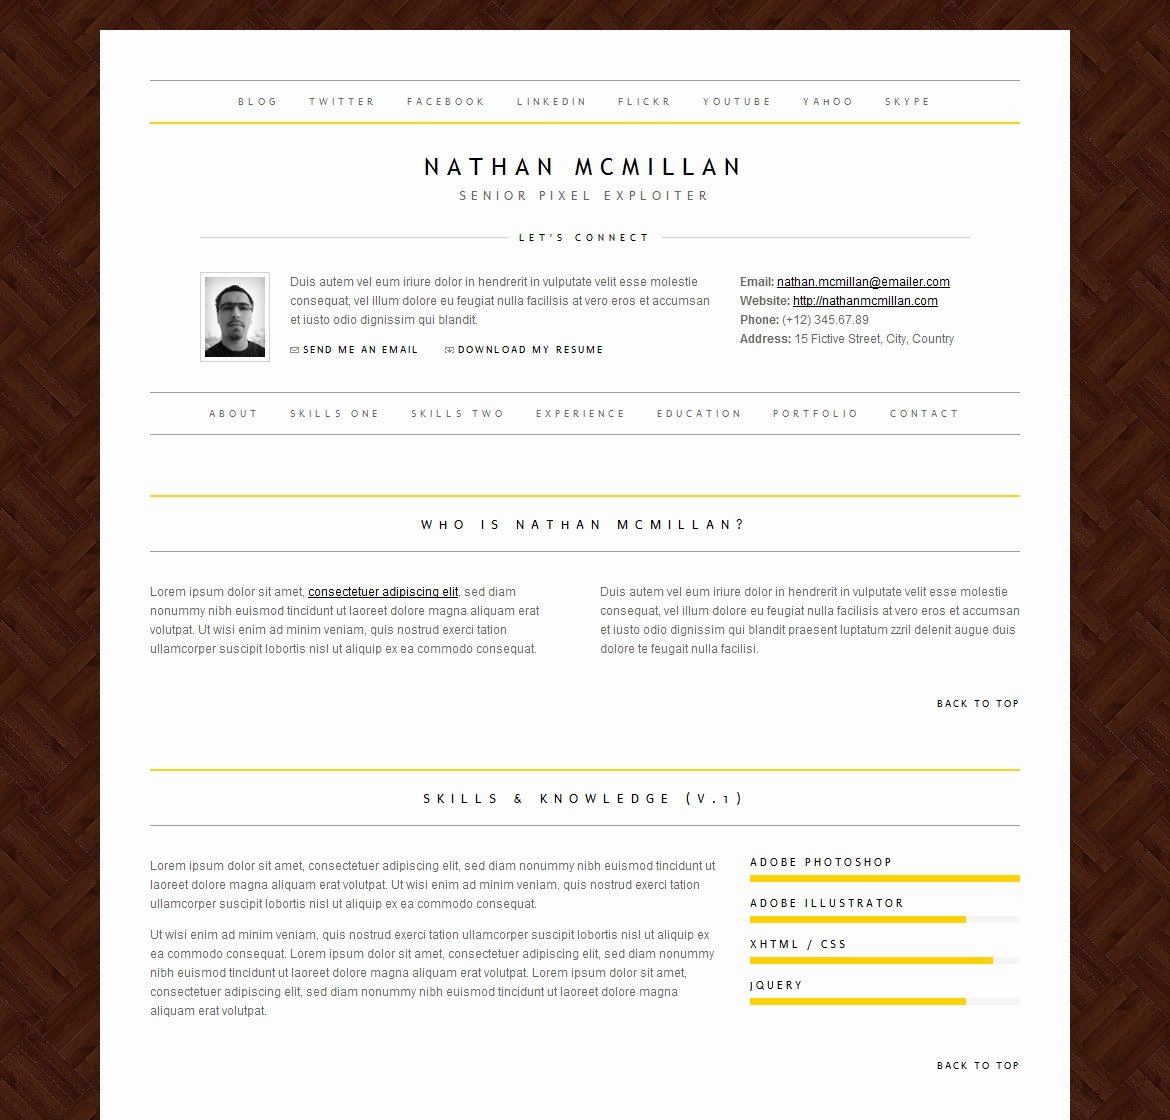 Html5 Resume Template Free Inspirational 41 HTML5 Resume Templates Free Samples Examples format